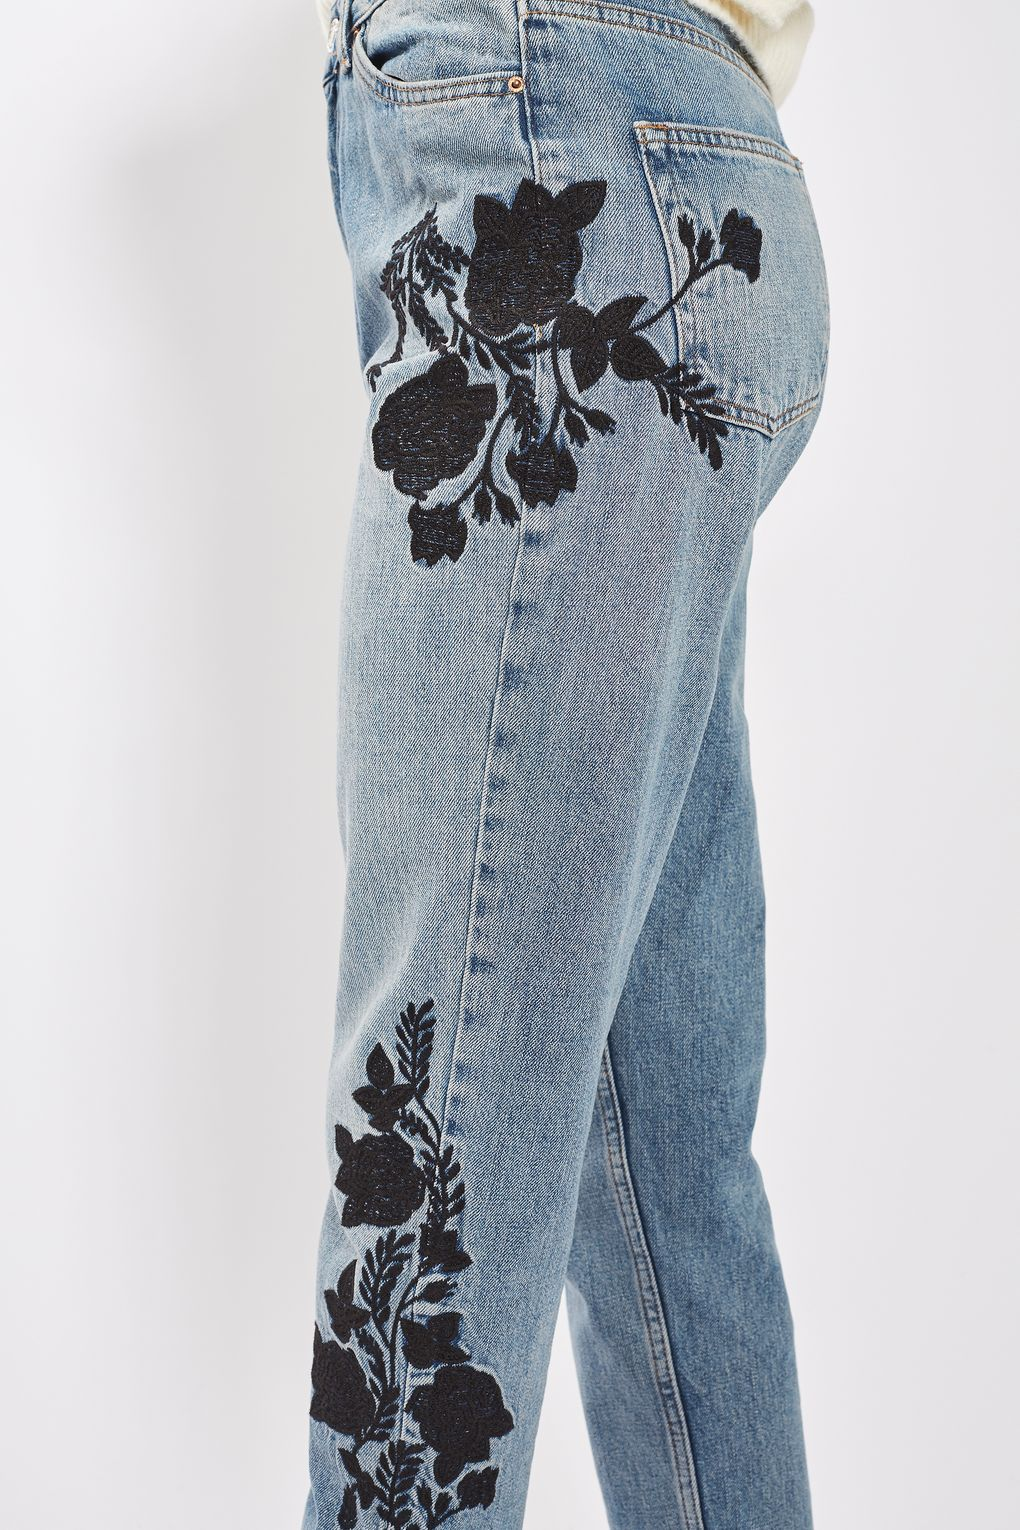 aeb9bcc2f732cf Carousel Image 3 Jeans Brodés, Embroidered Mom Jeans, Jeans With Embroidery,  Floral Embroidery